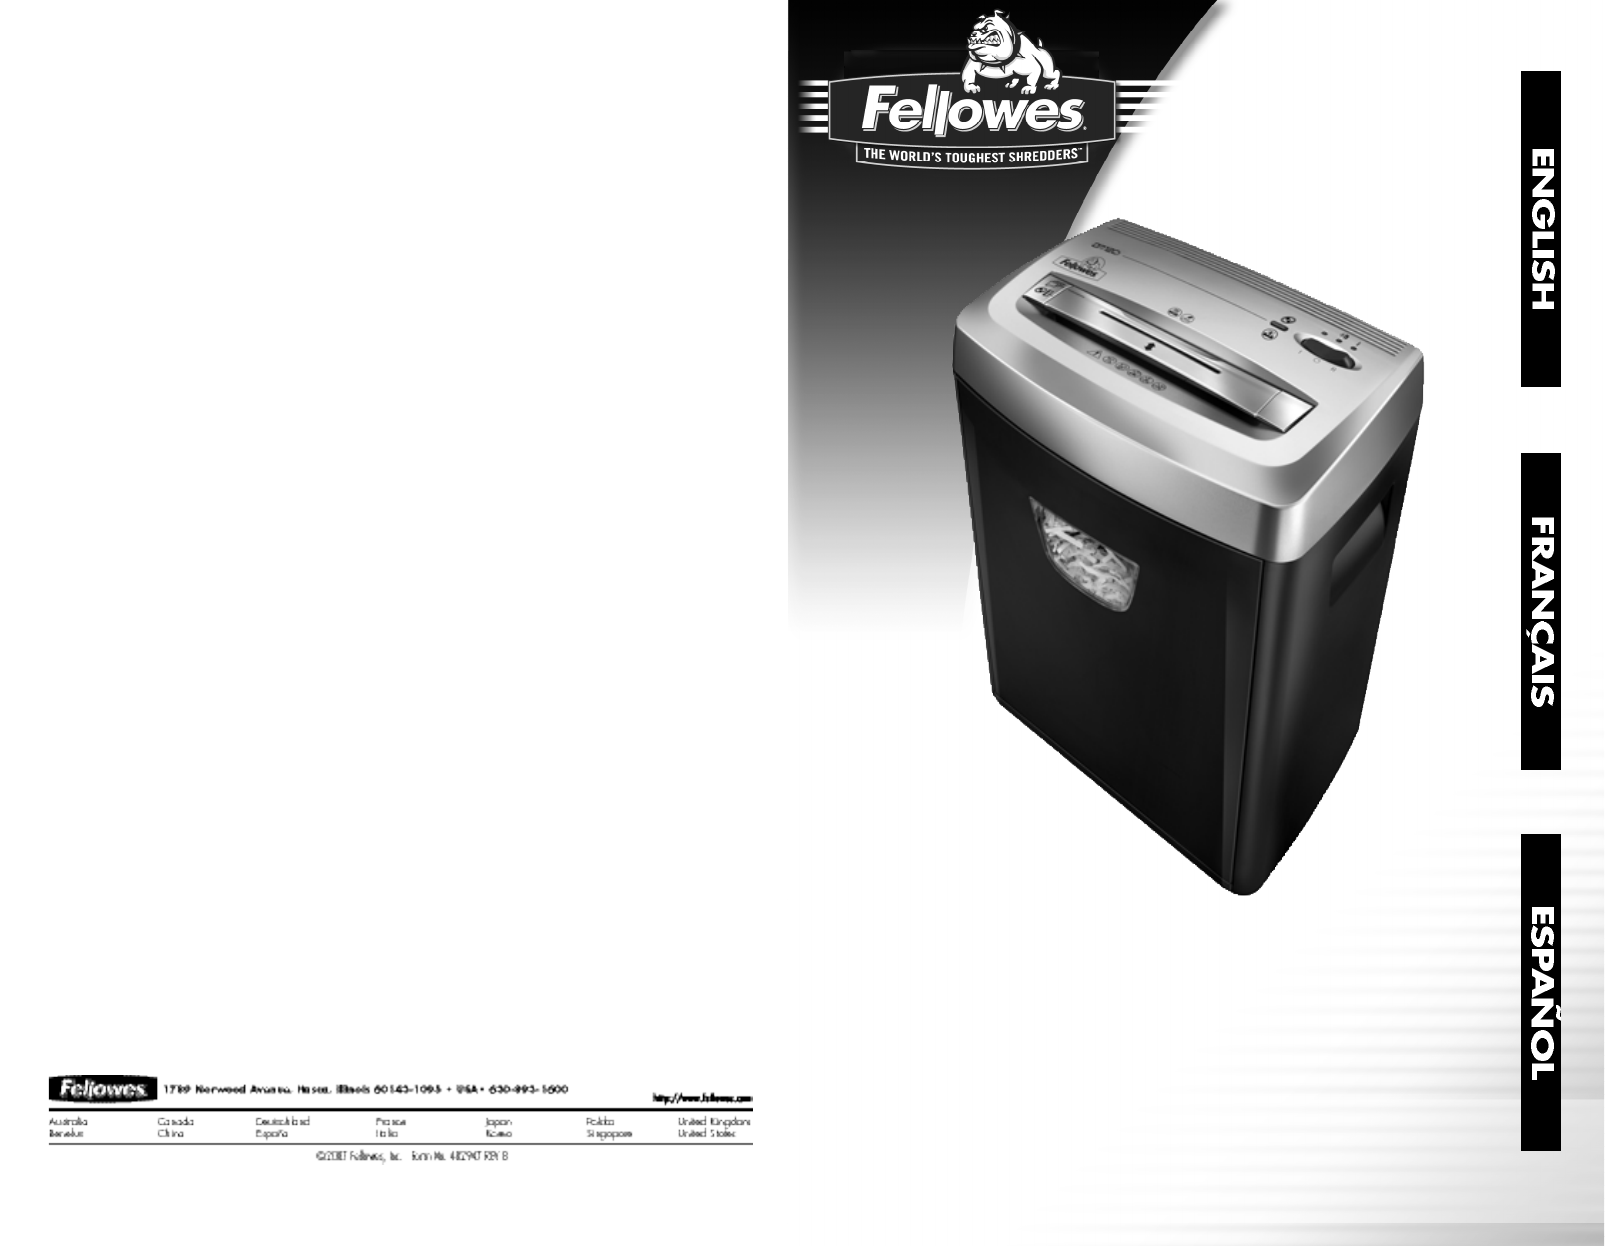 Dm12ct cross-cut shredder manual